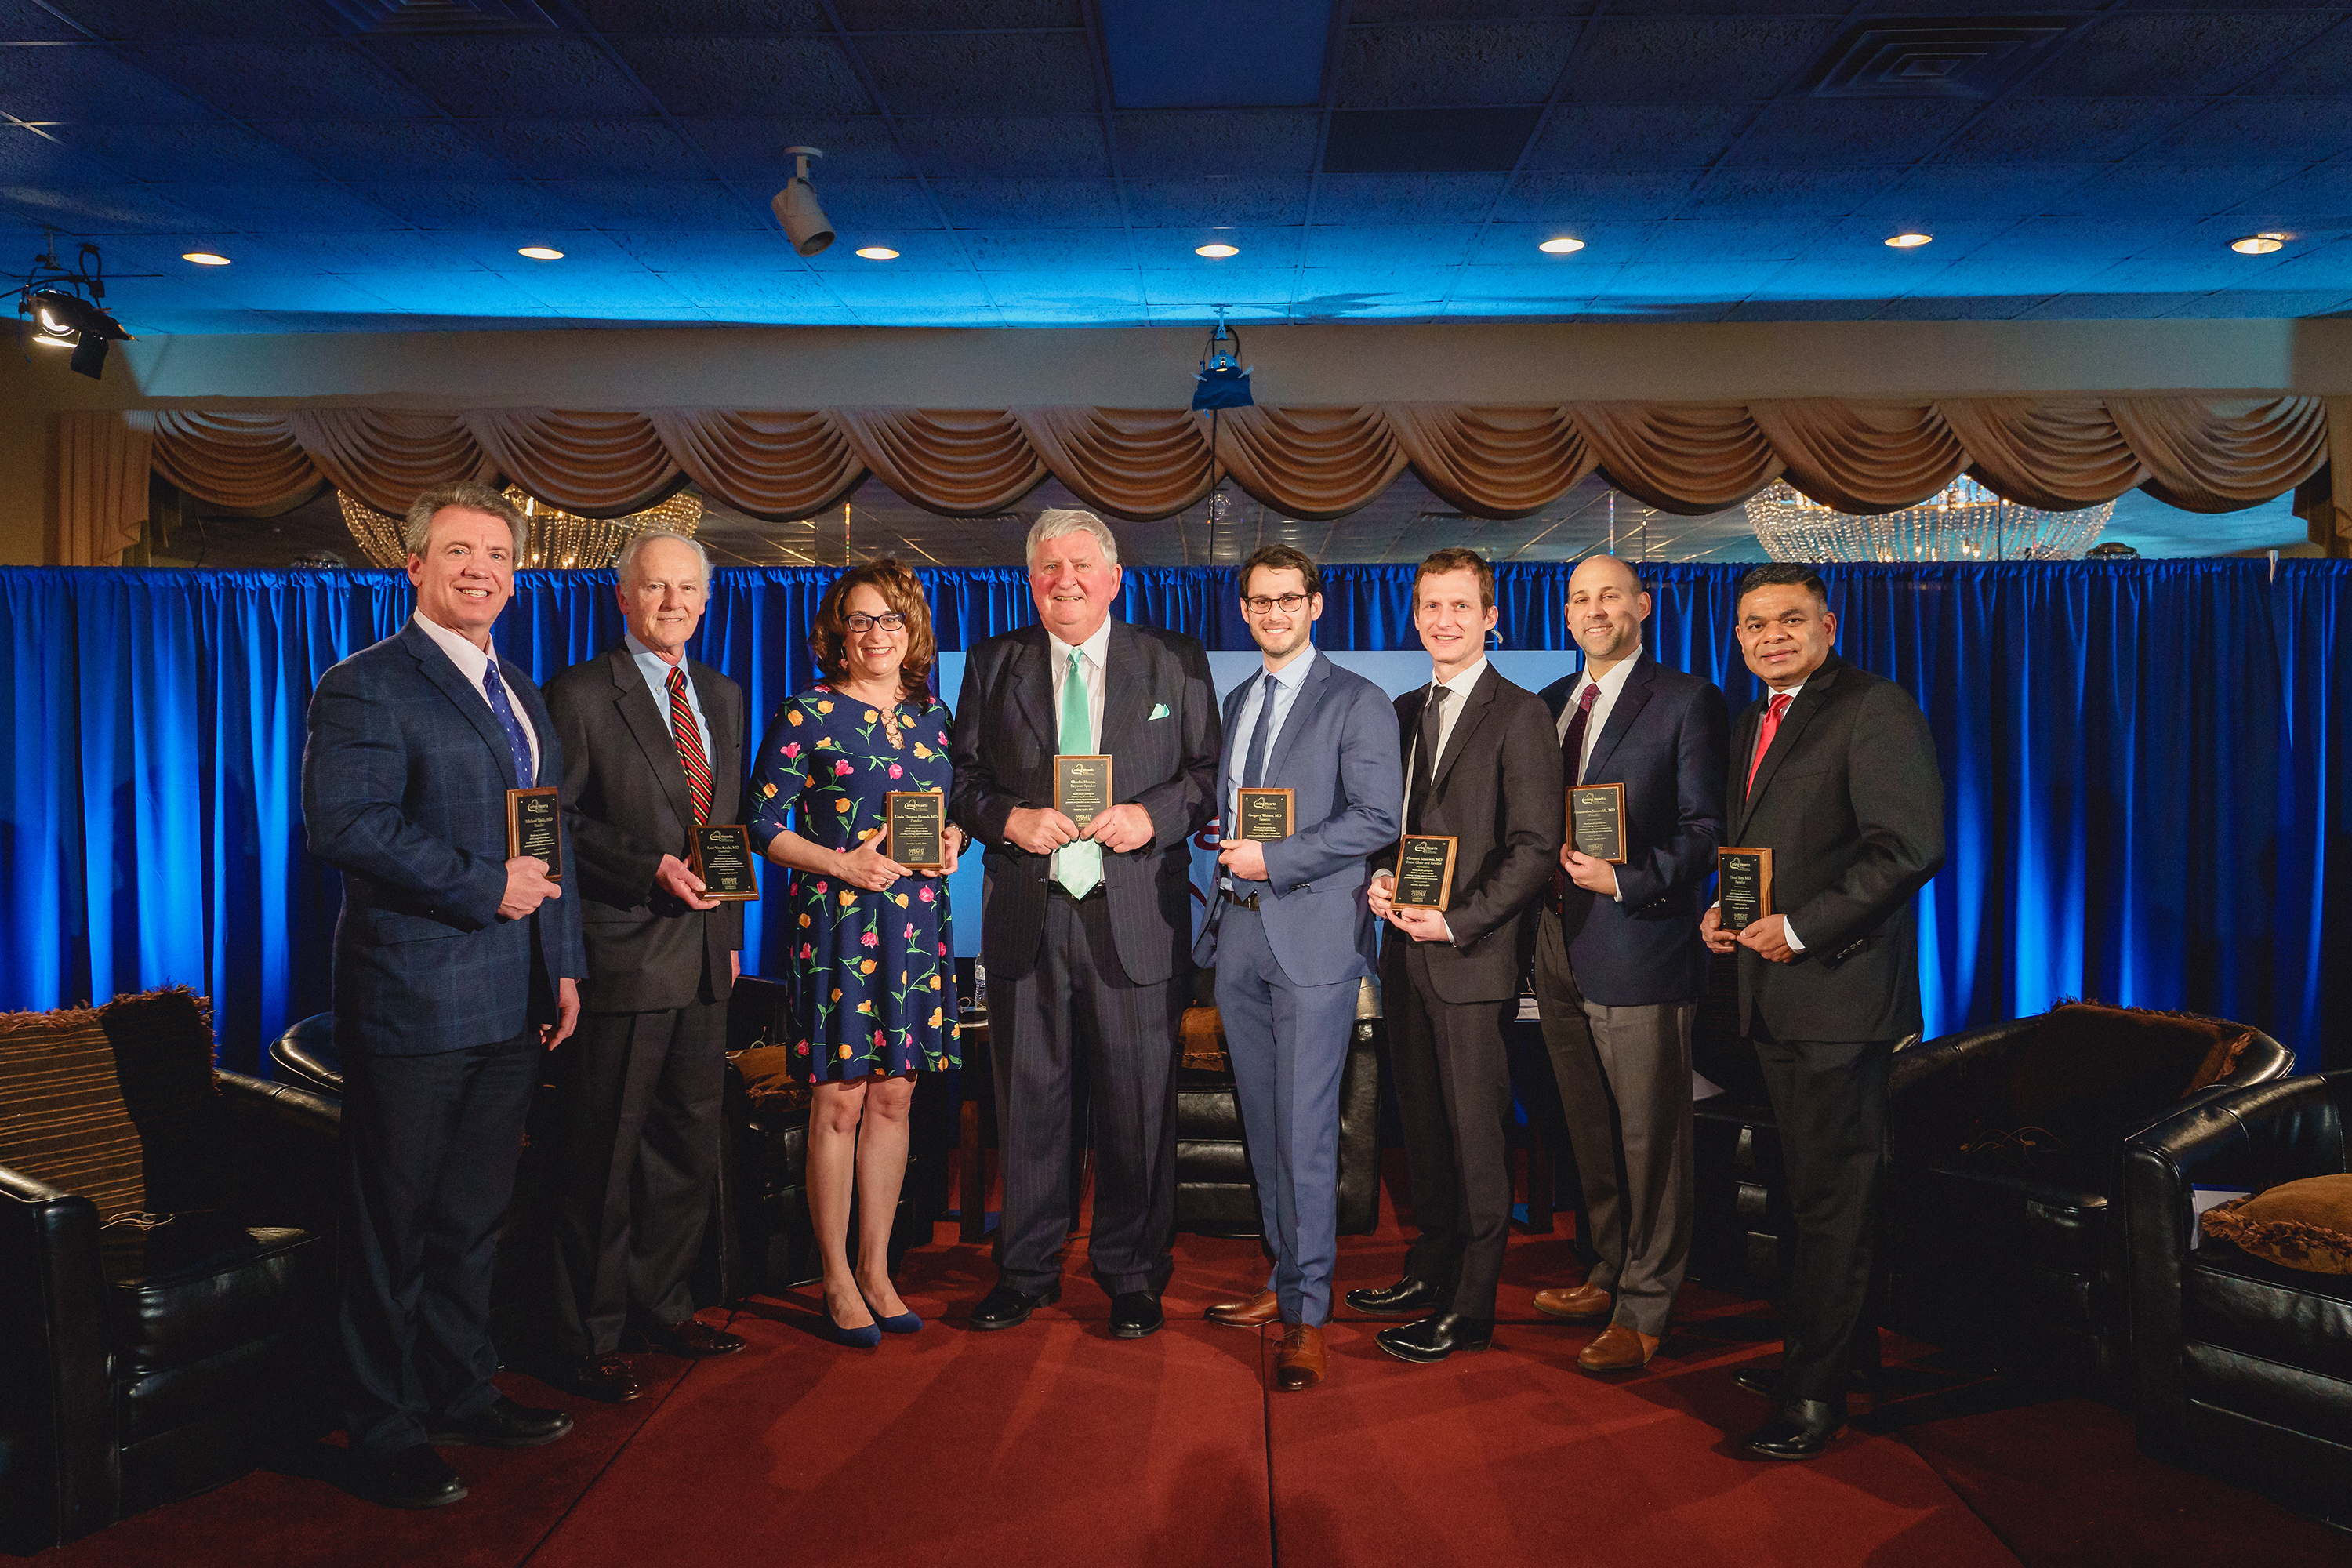 The Wright Center for Community Health's 2019 Panel Discussion & Dinner